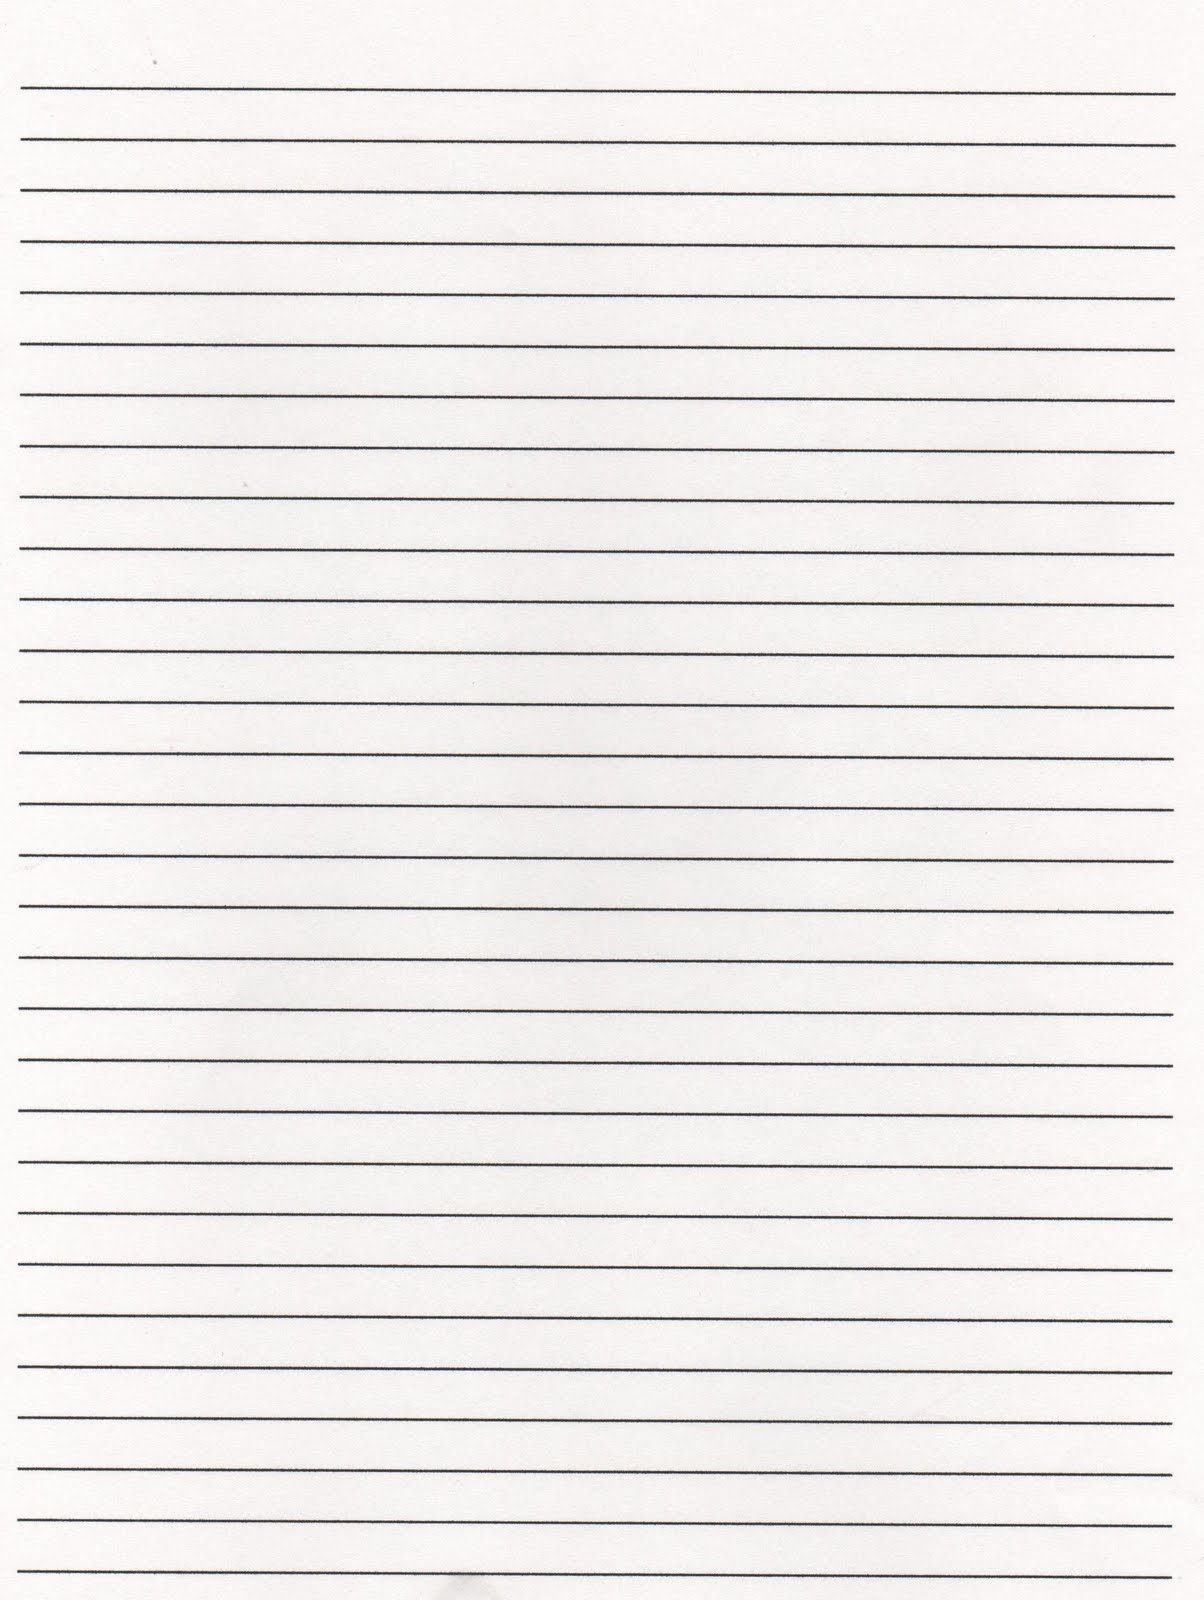 Elementary Ruled Paper  Lined Paper Background For Word